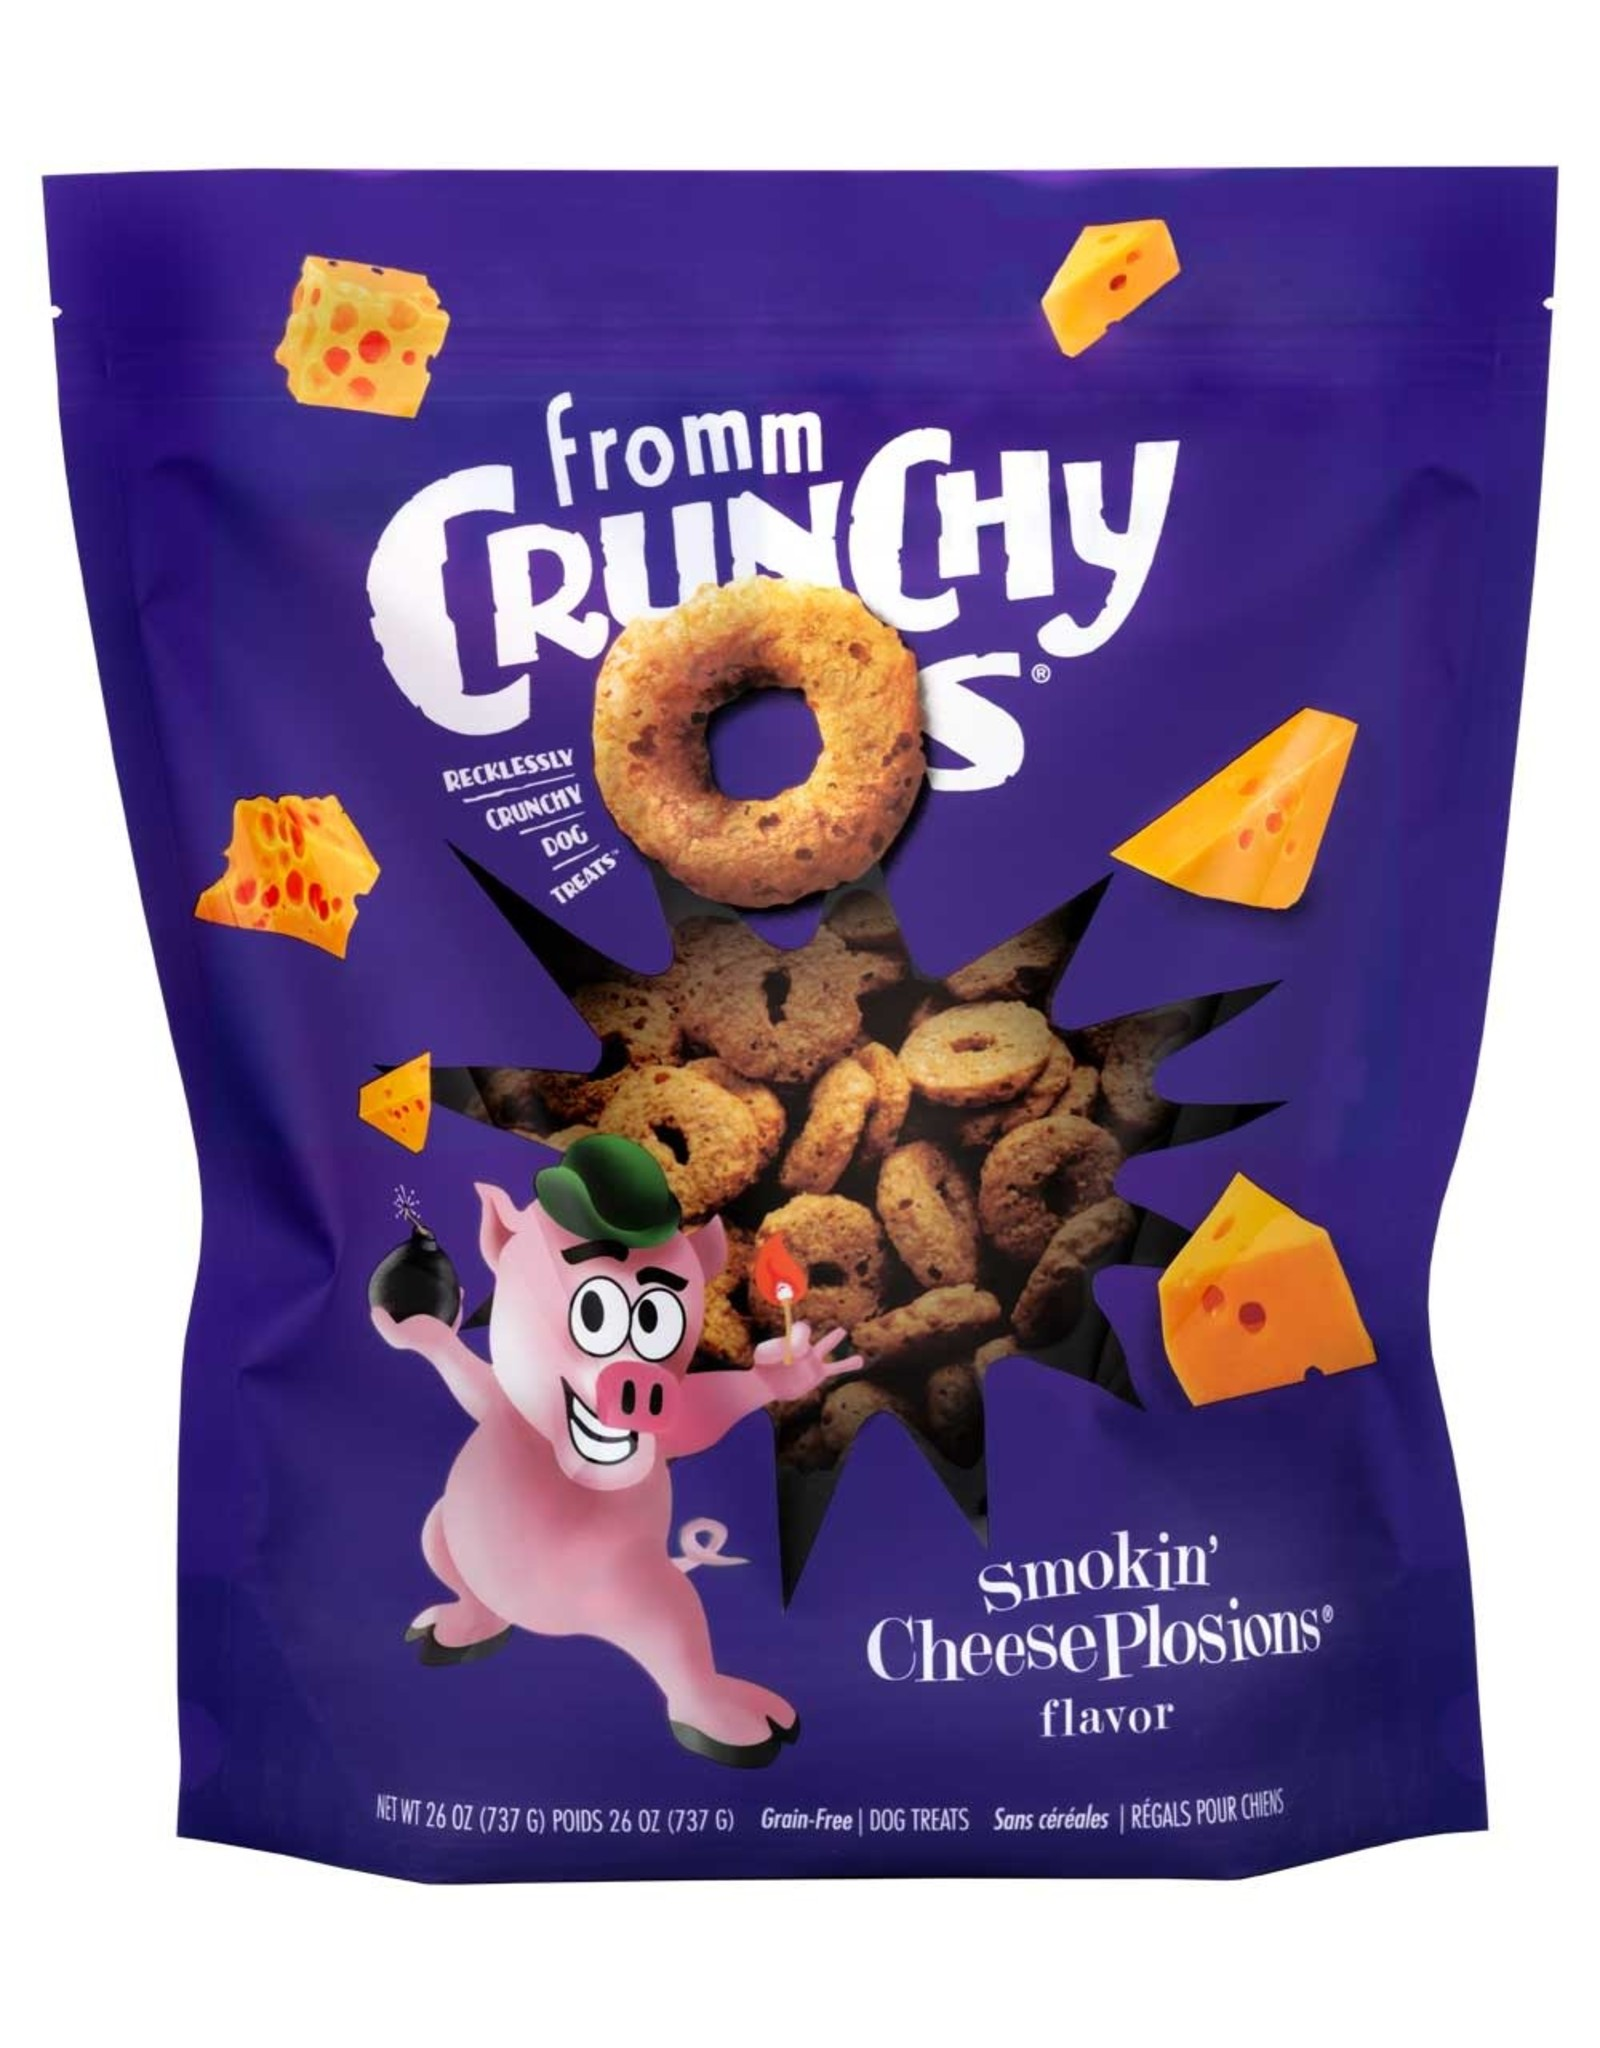 Fromm Fromm Crunchy O's: Smokin' Cheeseplosions, 26 oz